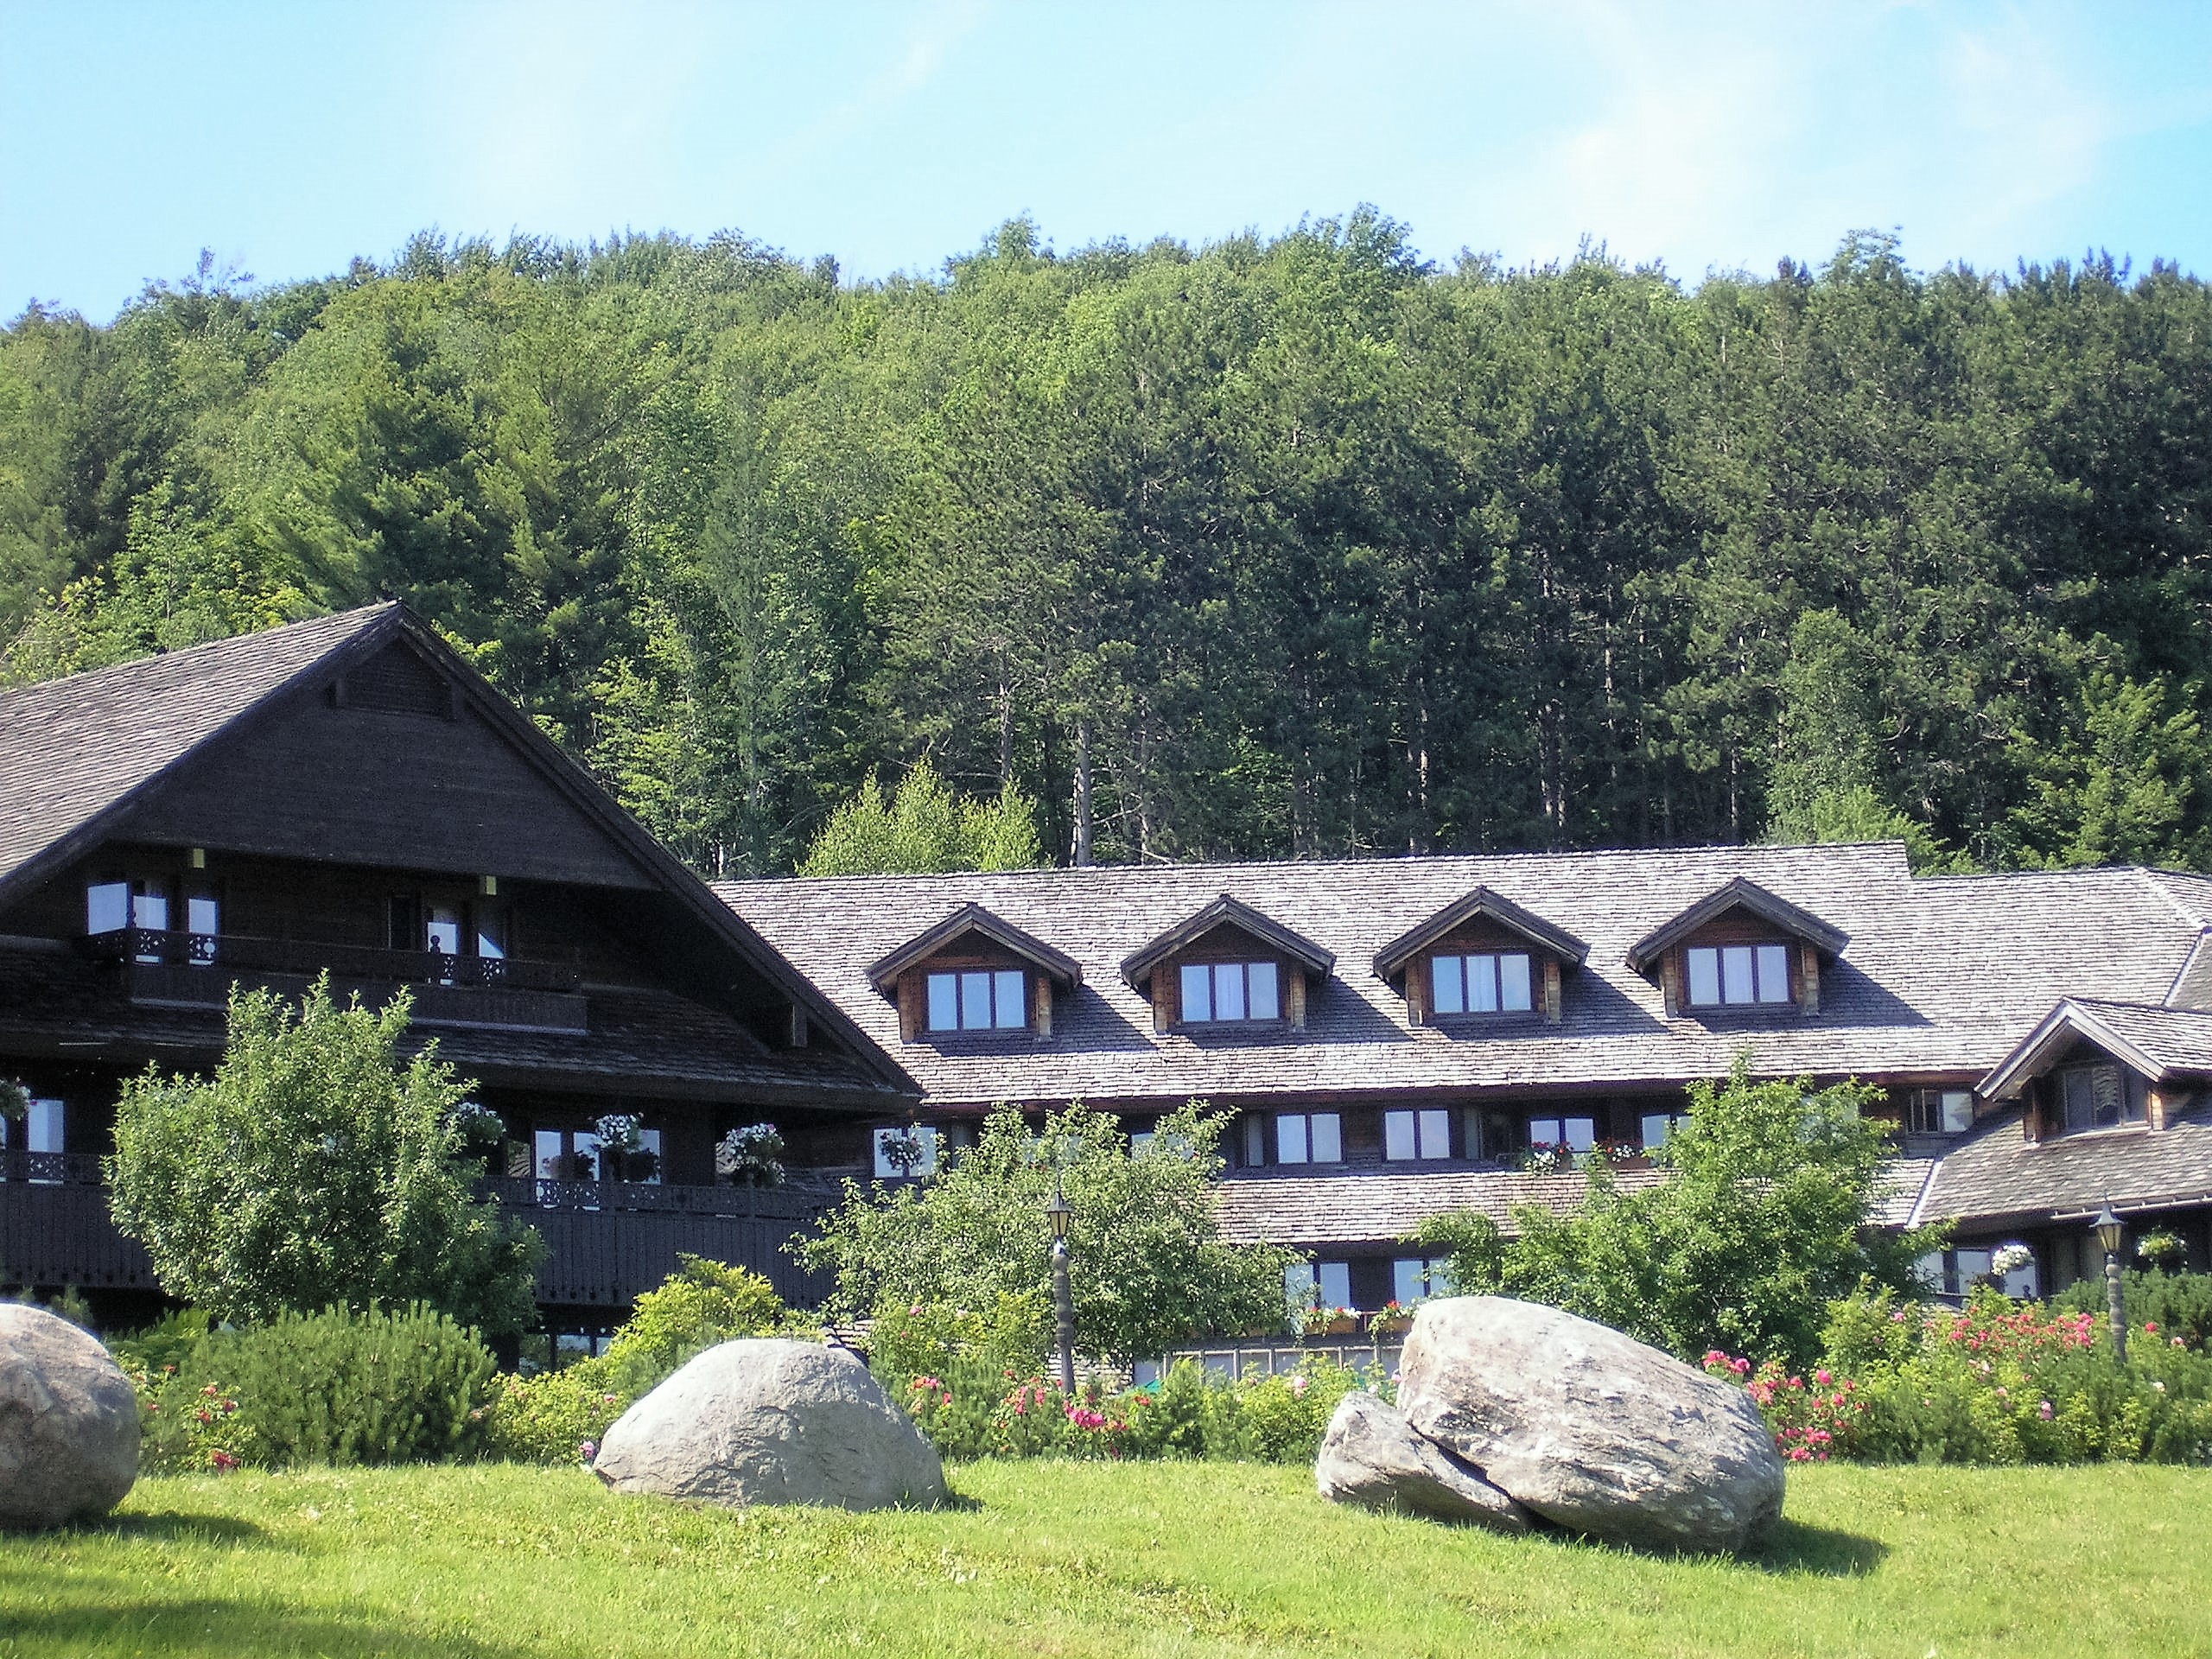 Trapp Family Lodge & Guest Houses image